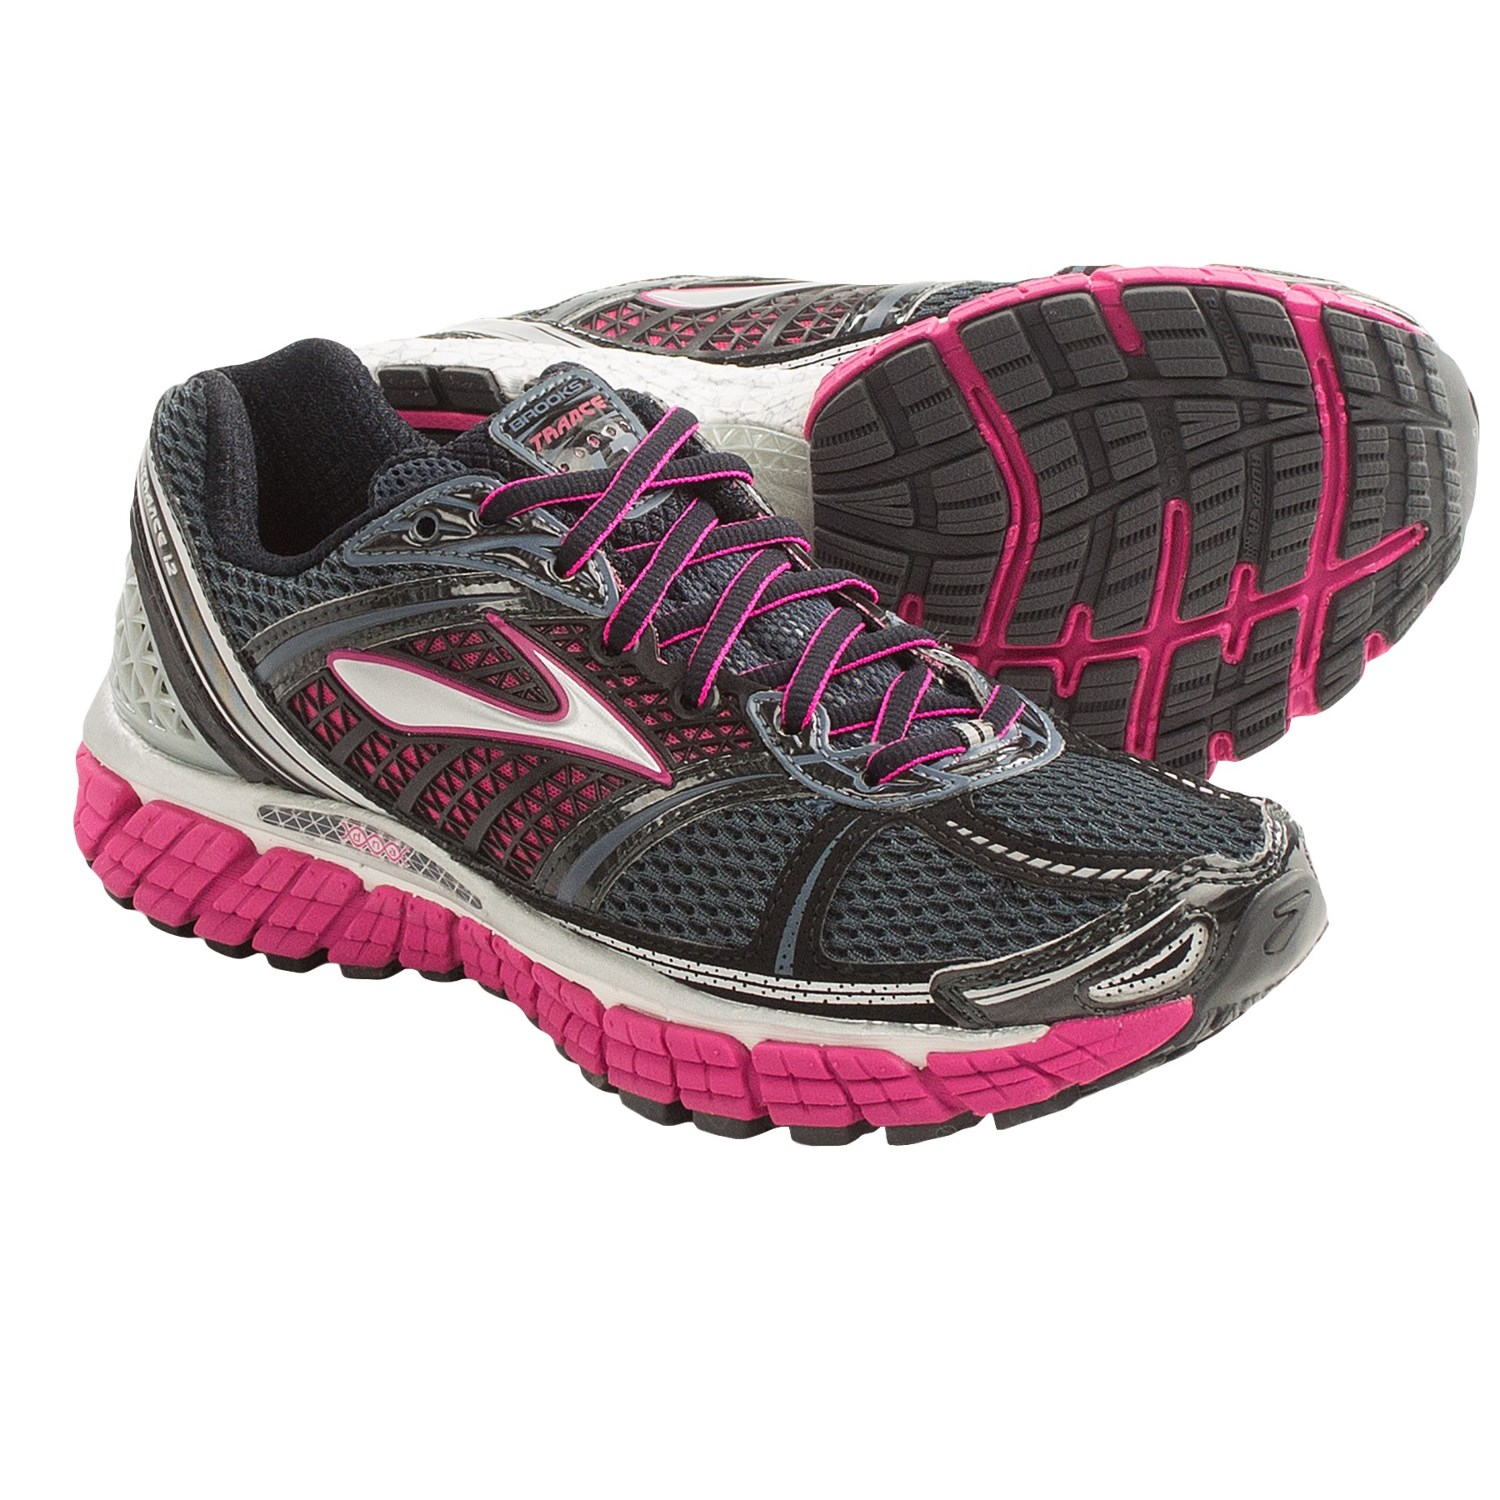 Brooks Trance 12 Running Shoes (For Women) in White/Silver/Black/Ombre